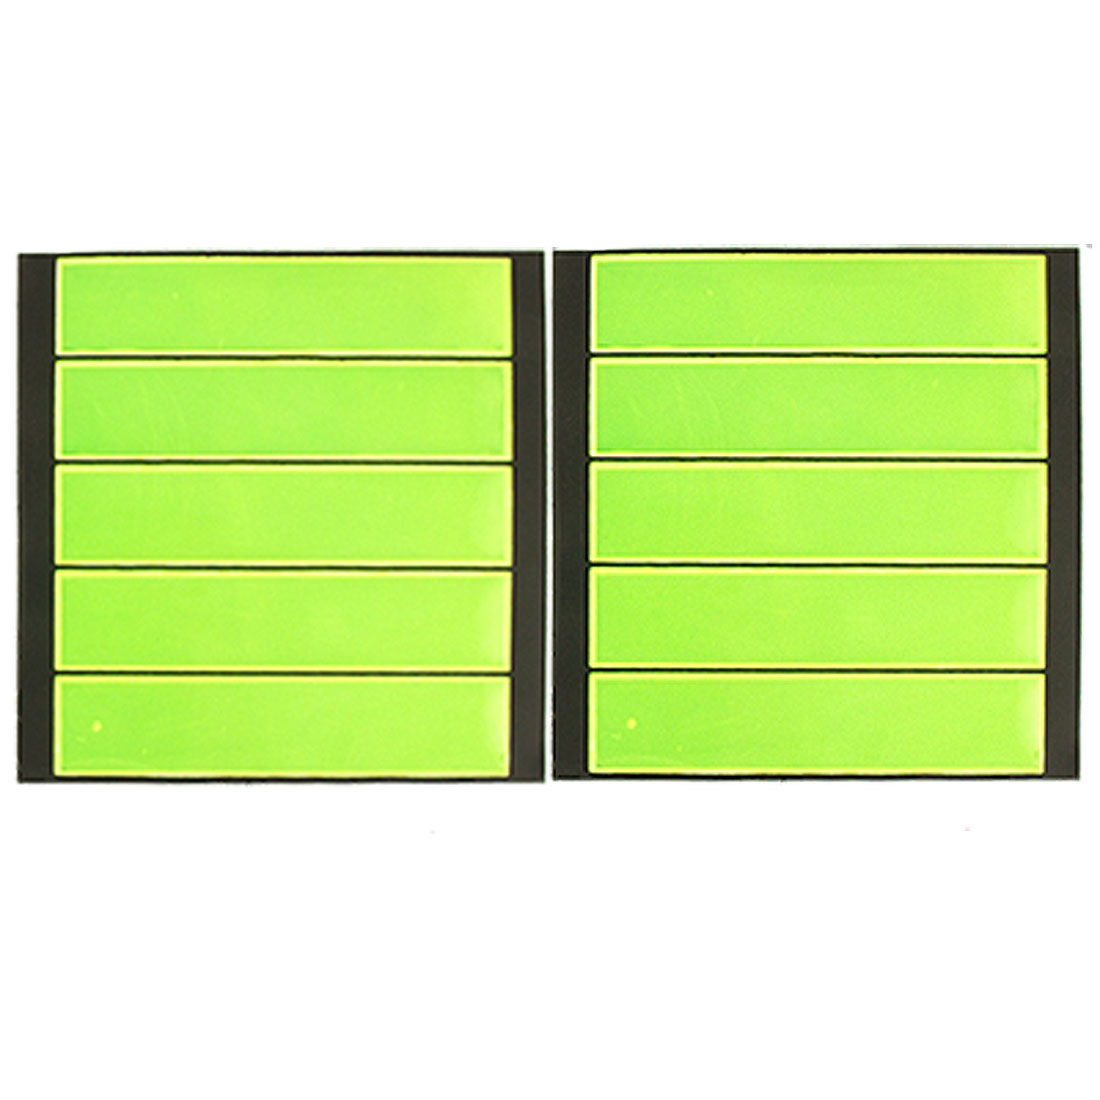 Green PVC Bar High Visibility Reflective Stickers 10 Pcs for Car